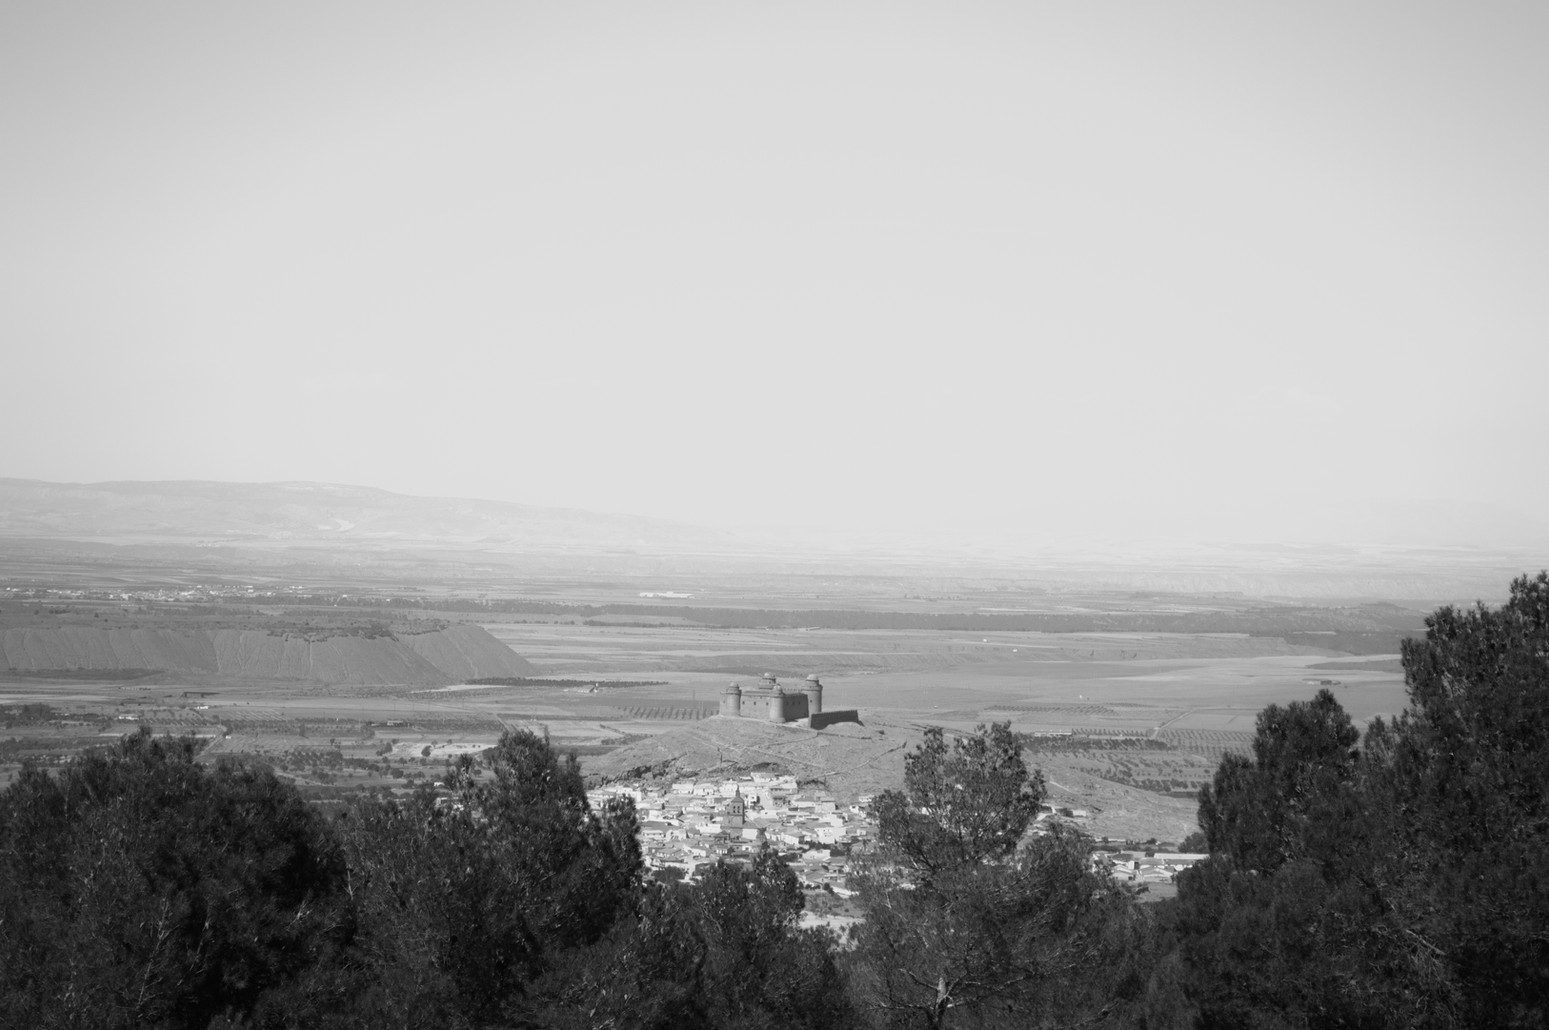 La Calahorra and across the plain from the Sierra Nevada mountains